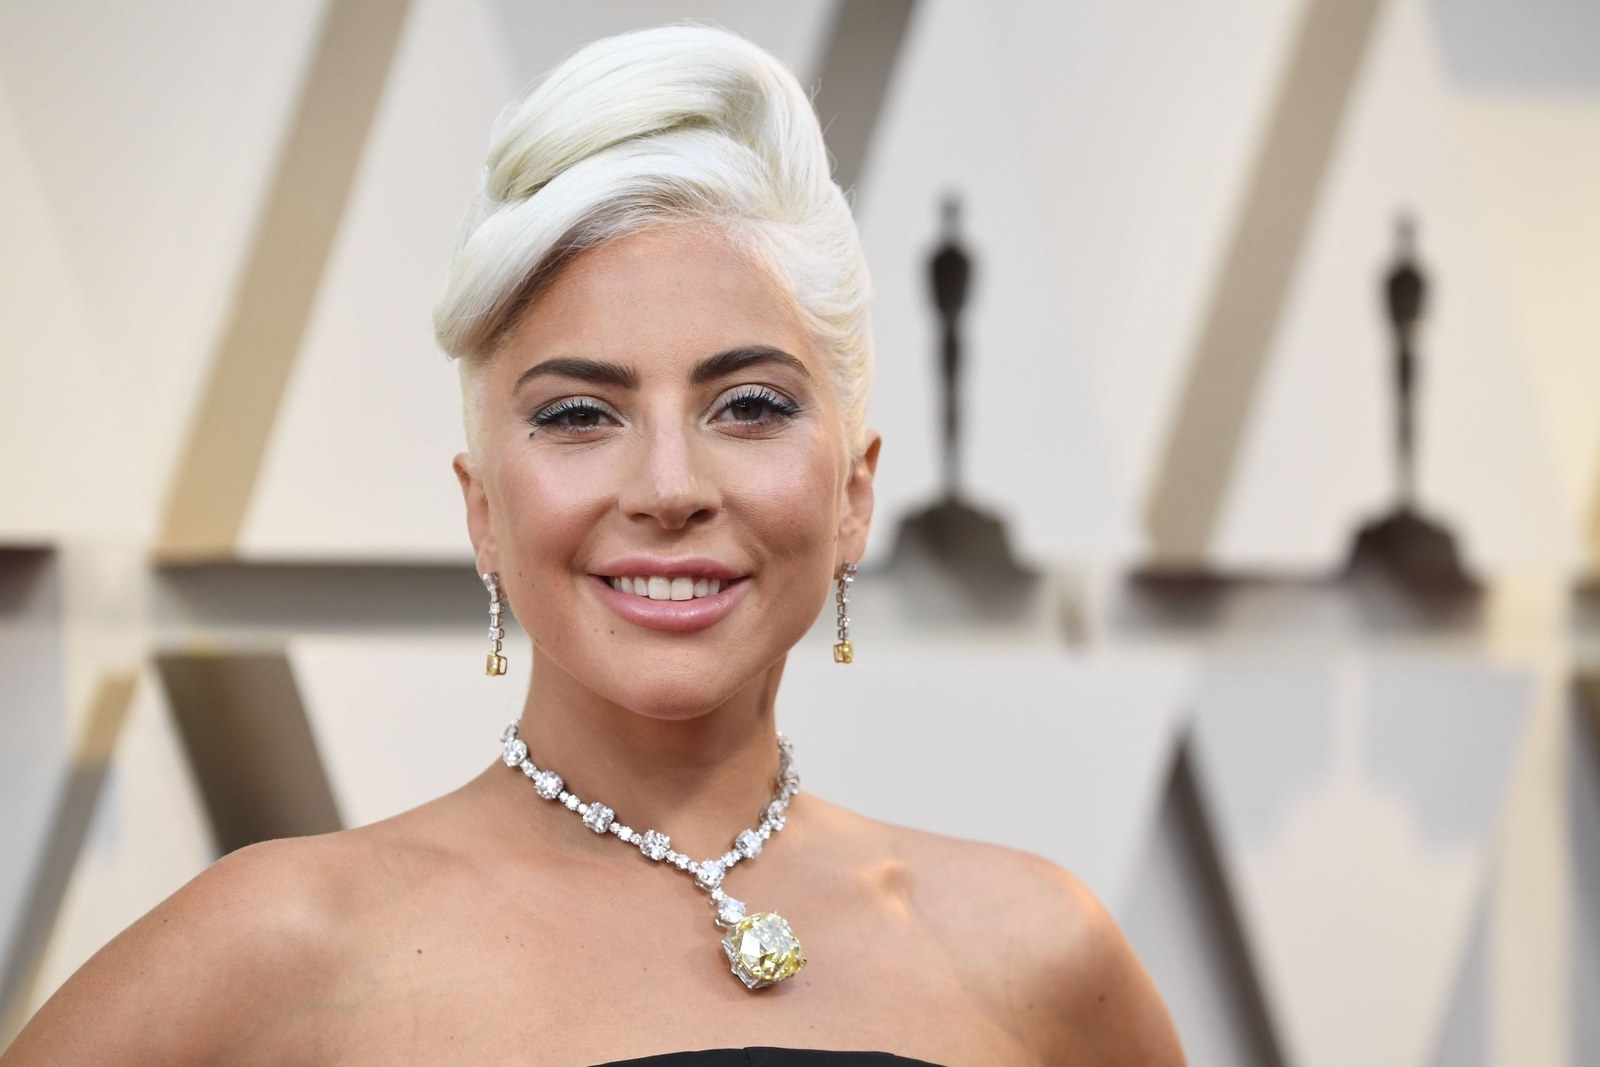 Lady Gaga will be 33 come March 28.